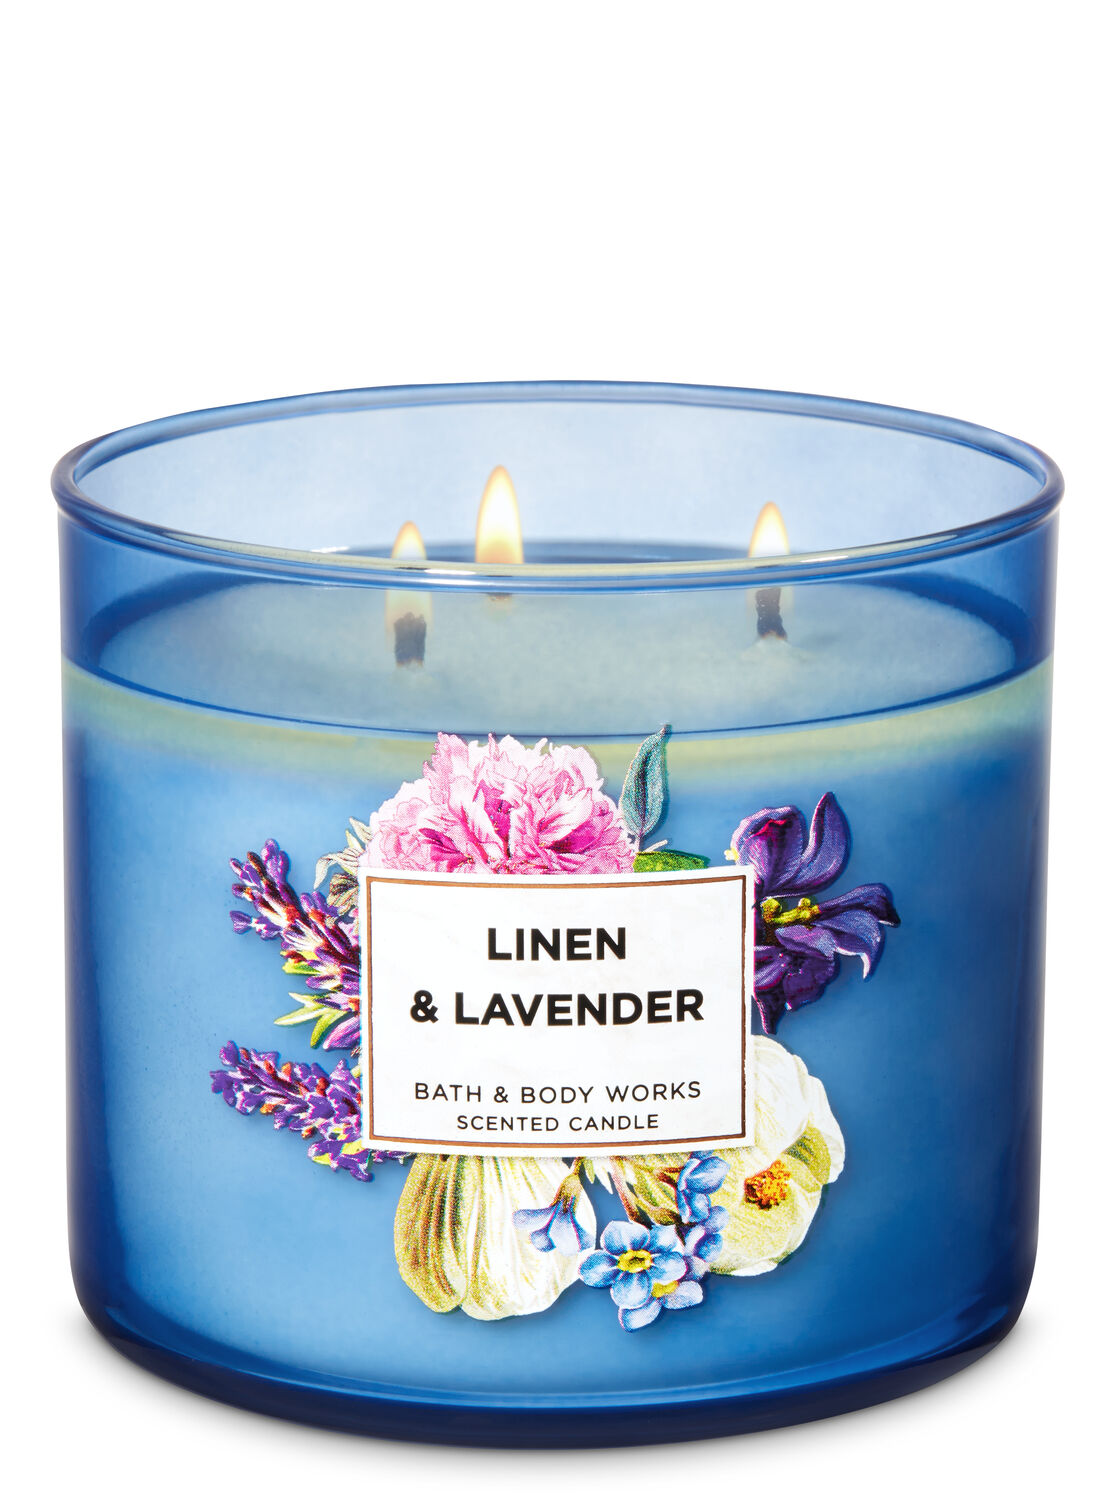 Linen Lavender 3 Wick Candle Bath Body Works